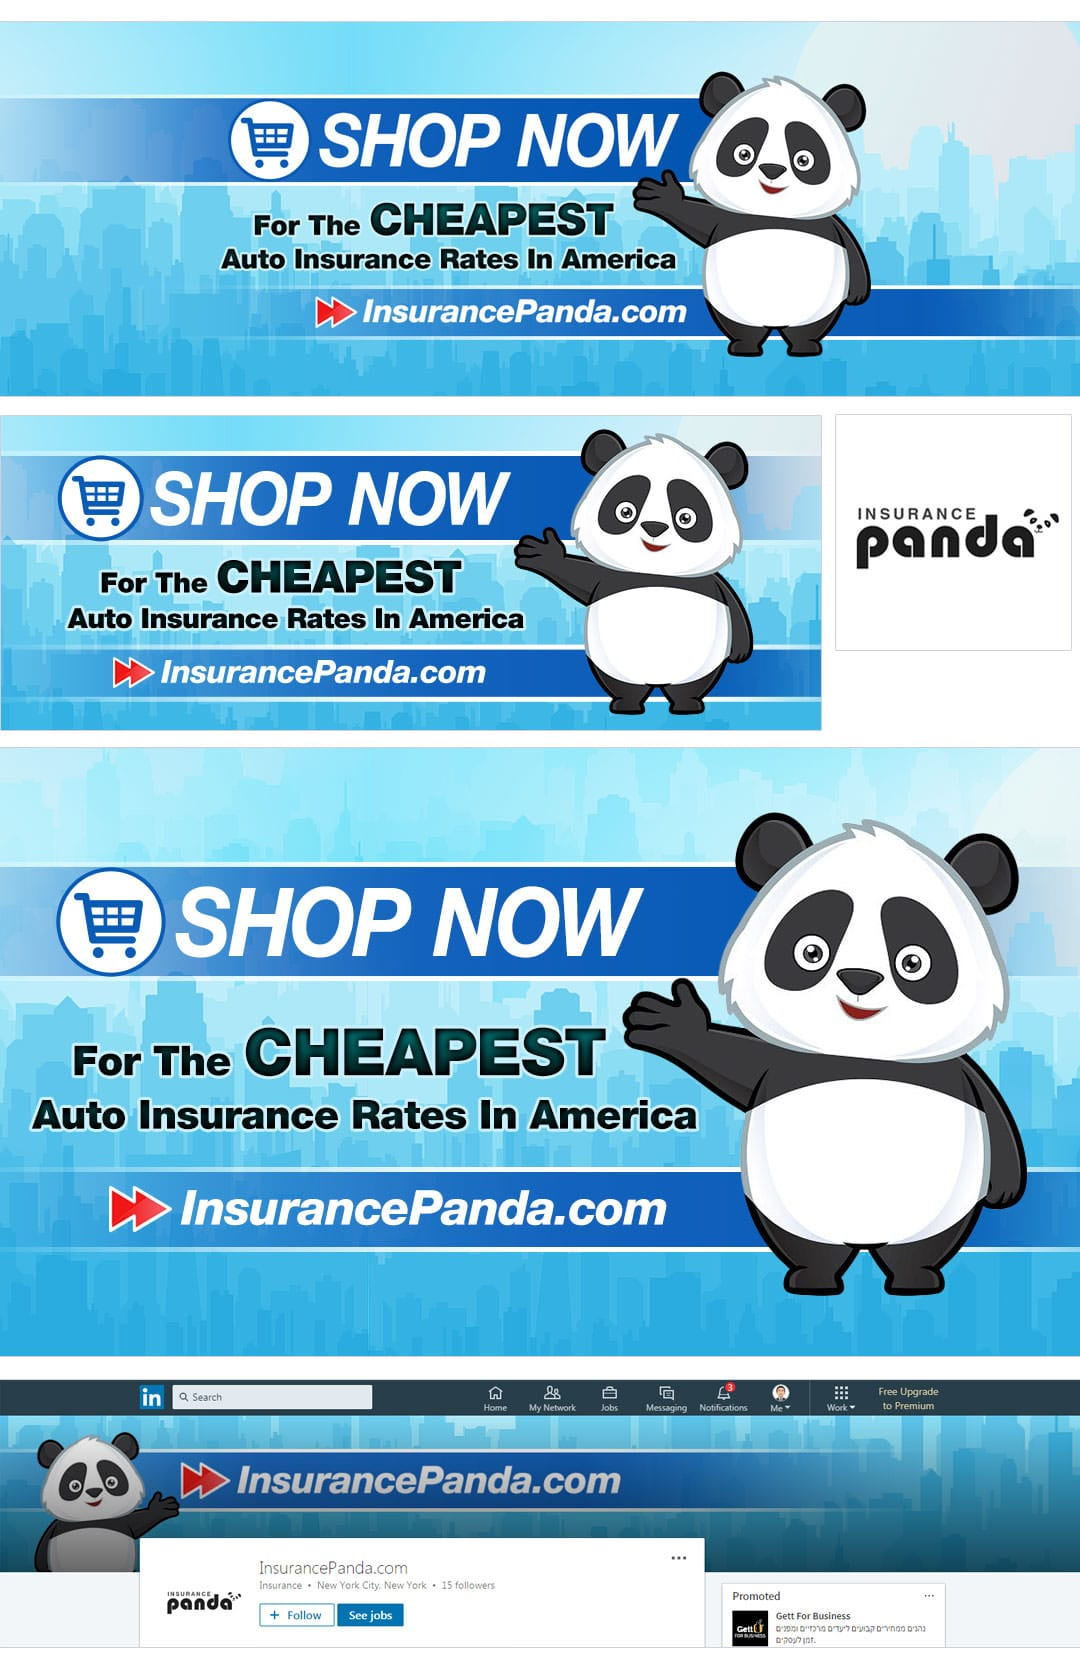 Social Media Package Example for Insurance Panda